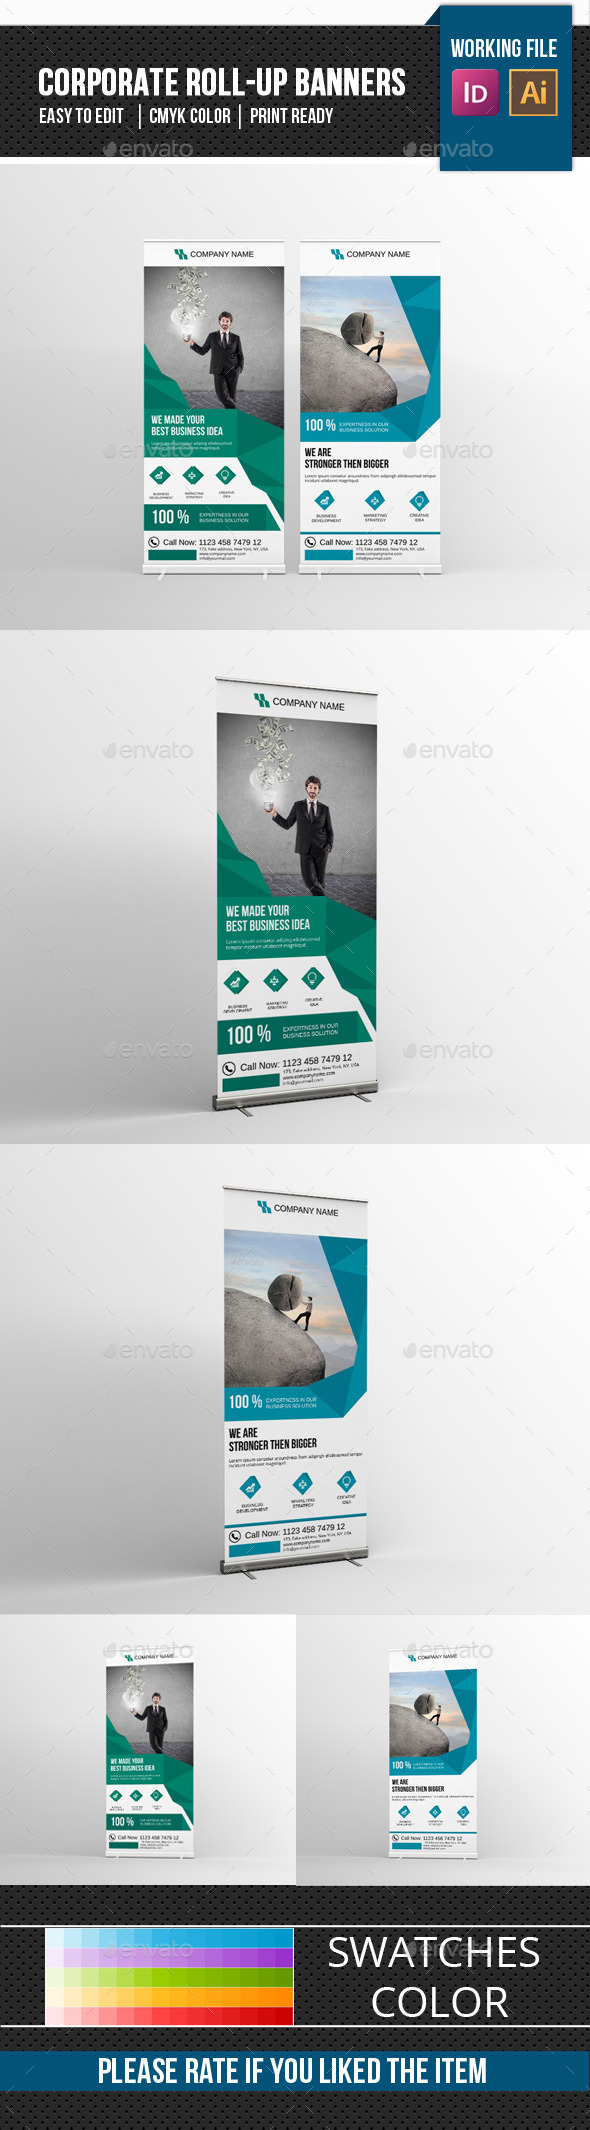 Corporate Roll-Up Banner-V06 - Signage Print Templates